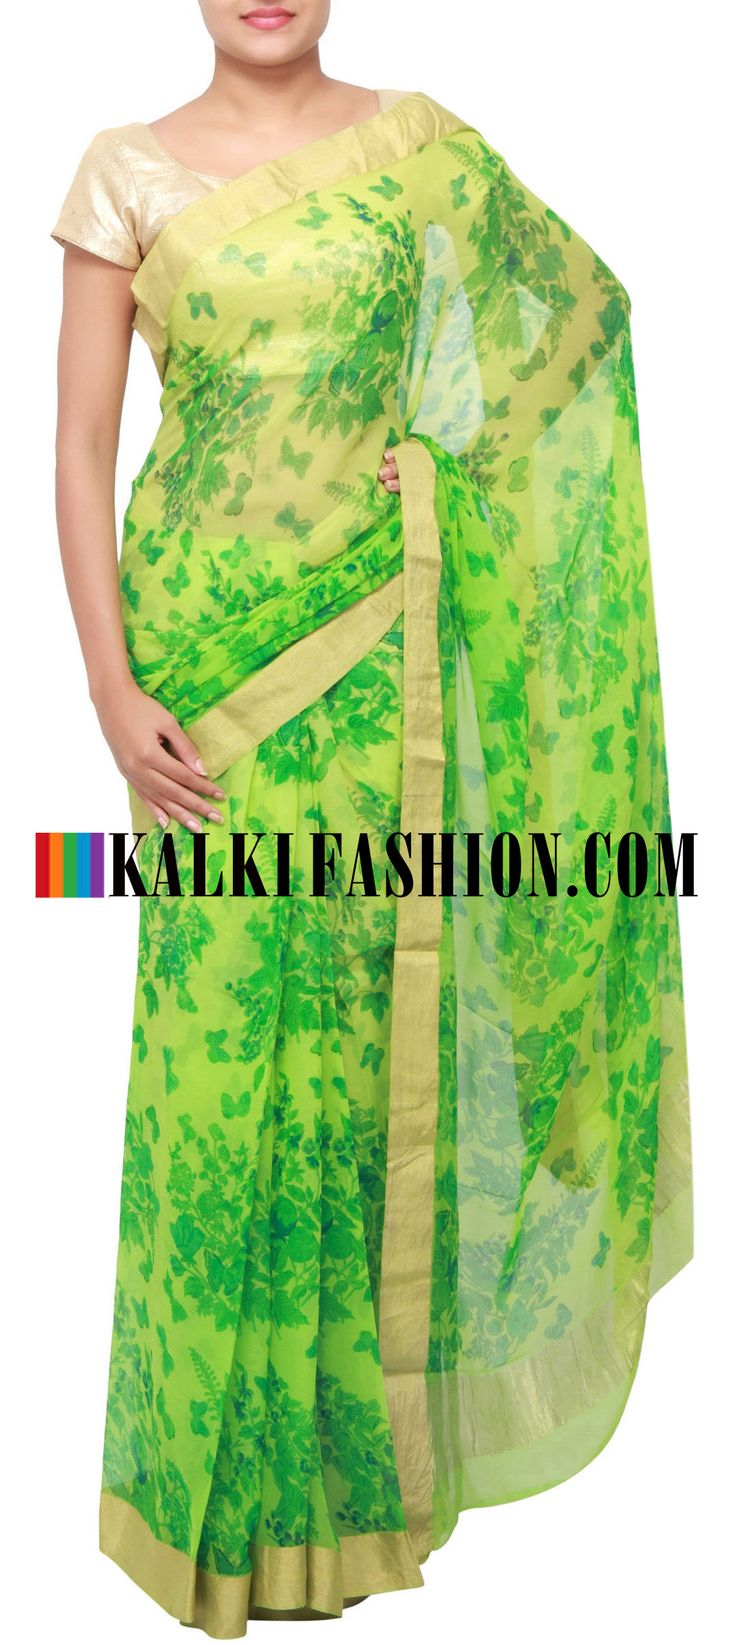 Get this beautiful saree here: http://www.kalkifashion.com/green-printed-saree-with-gold-shimmer-border-only-on-kalki.html Free shipping worldwide.